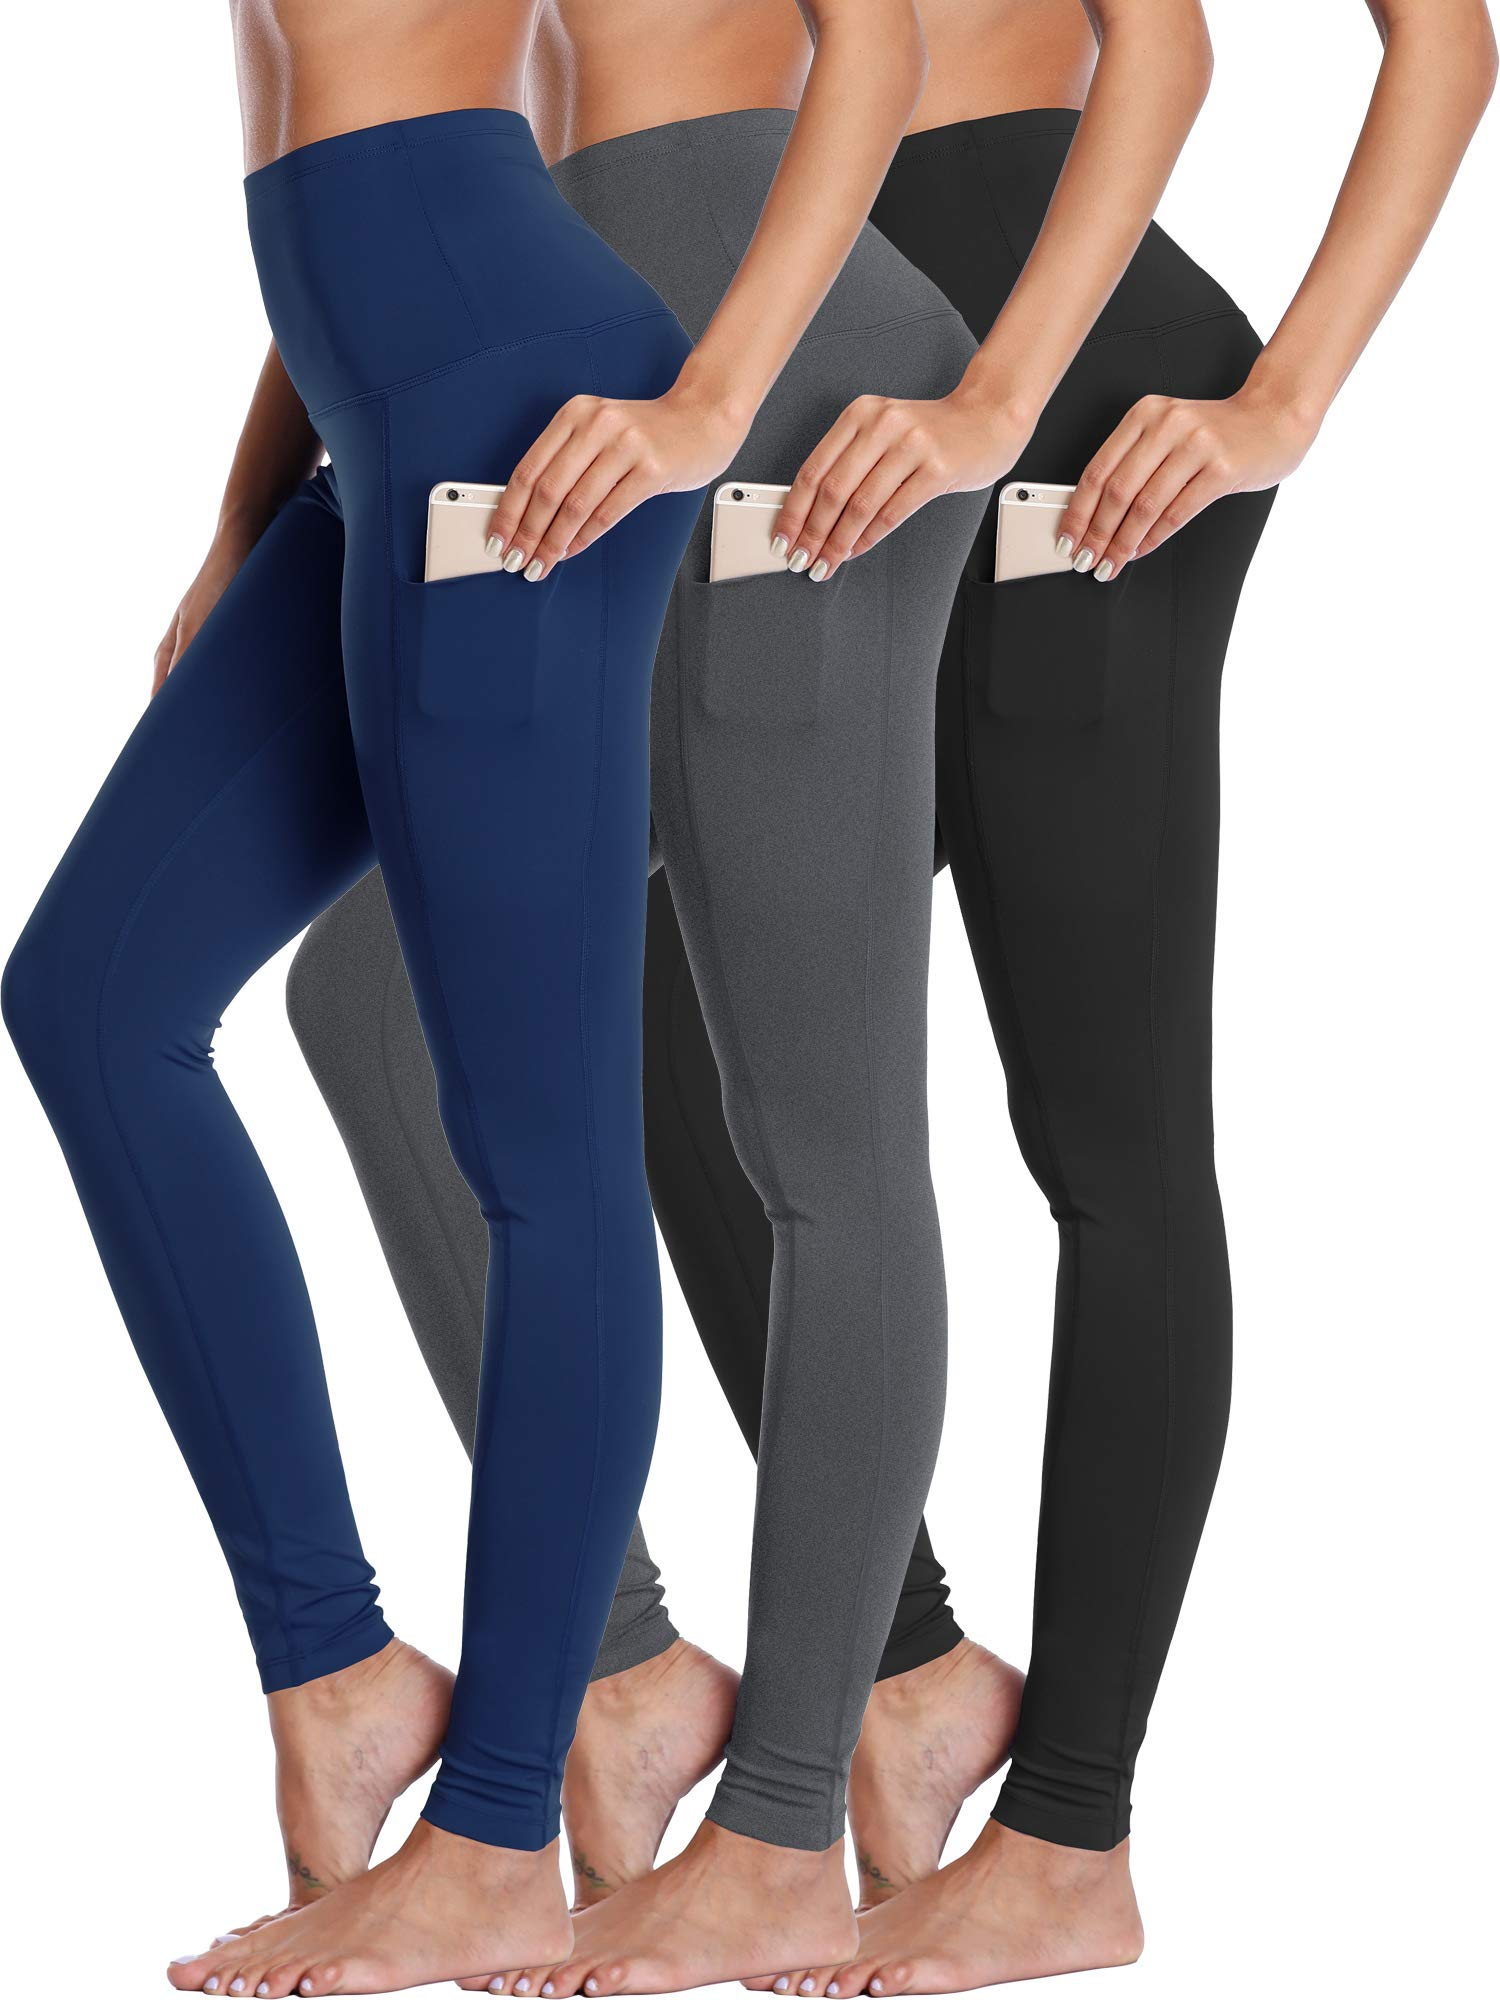 Neleus Women's 3 Pack Yoga Pant Workout Leggings Tummy Control High Waist,103,Black,Grey,Navy,L by Neleus